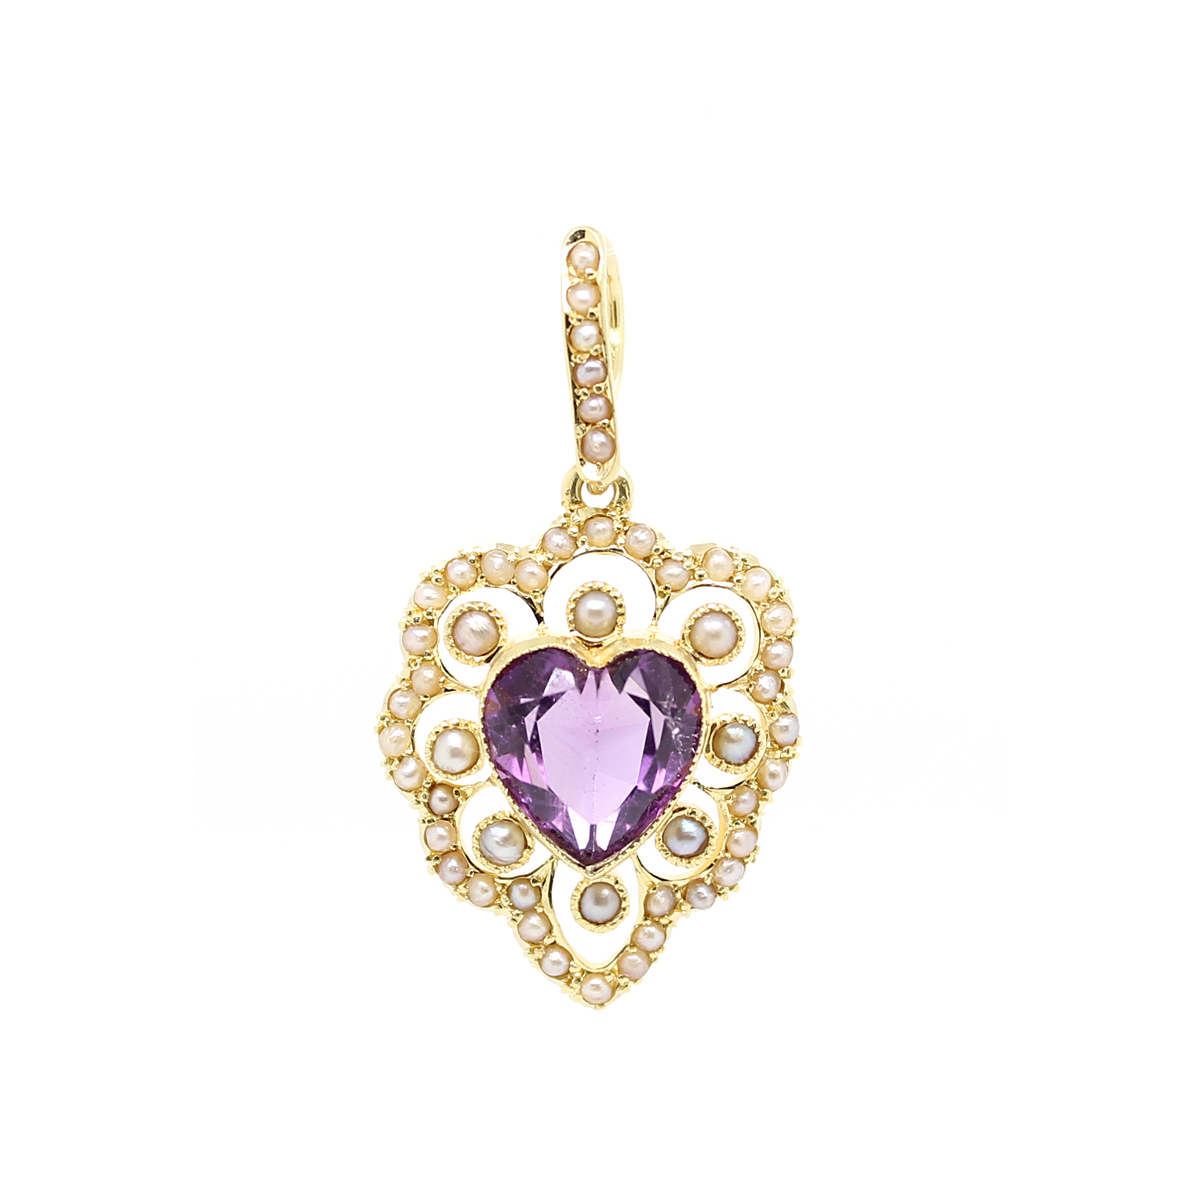 Vintage 14 Karat Yellow Gold Heart Shaped Amethyst and Pearl Pendant